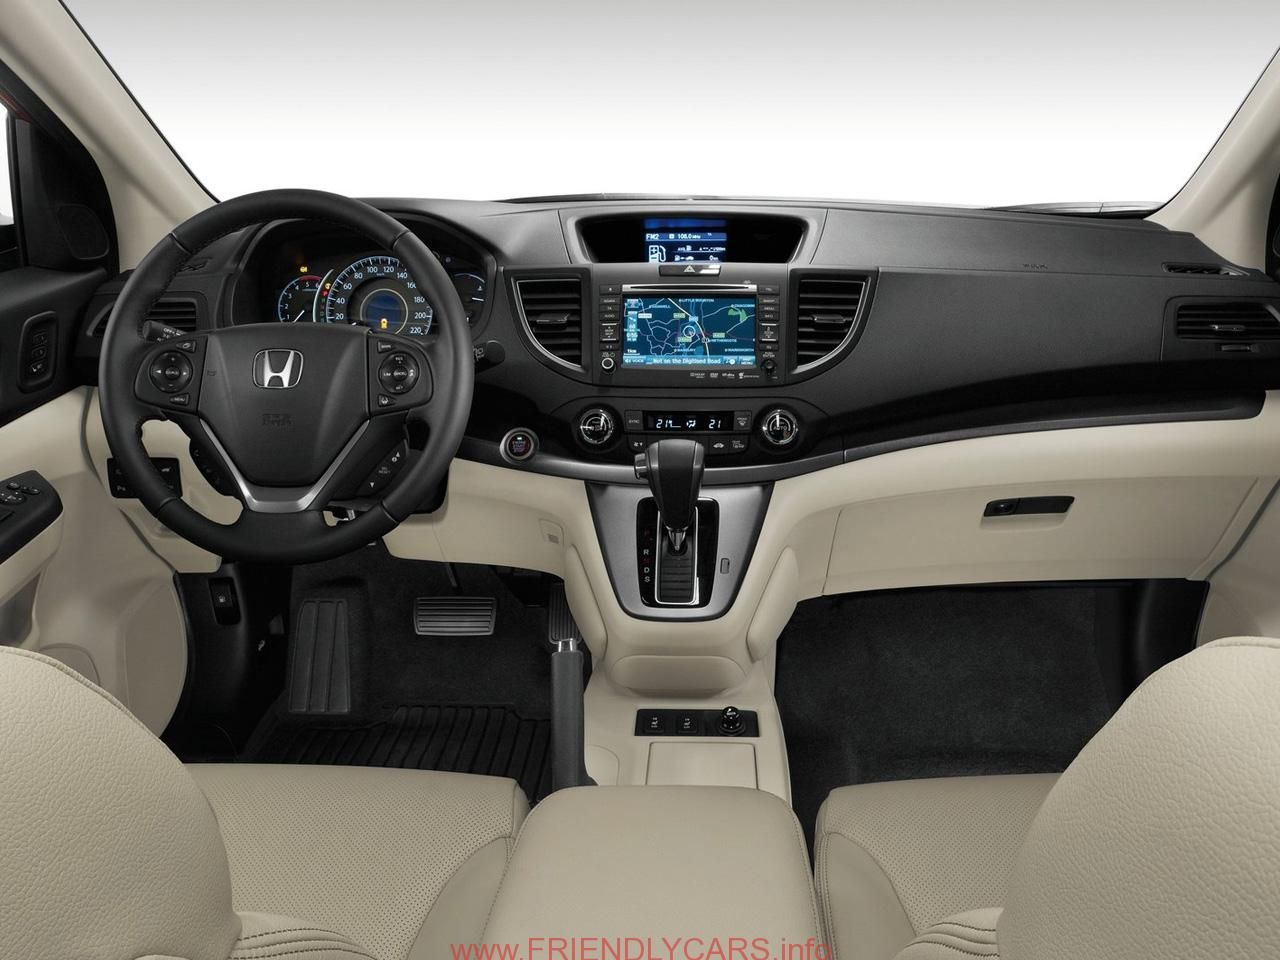 Attractive Cool Crv Honda 2013 Colors Car Images Hd 2013 Honda CR V Review And  Pictures 2014 2015 New Car Models